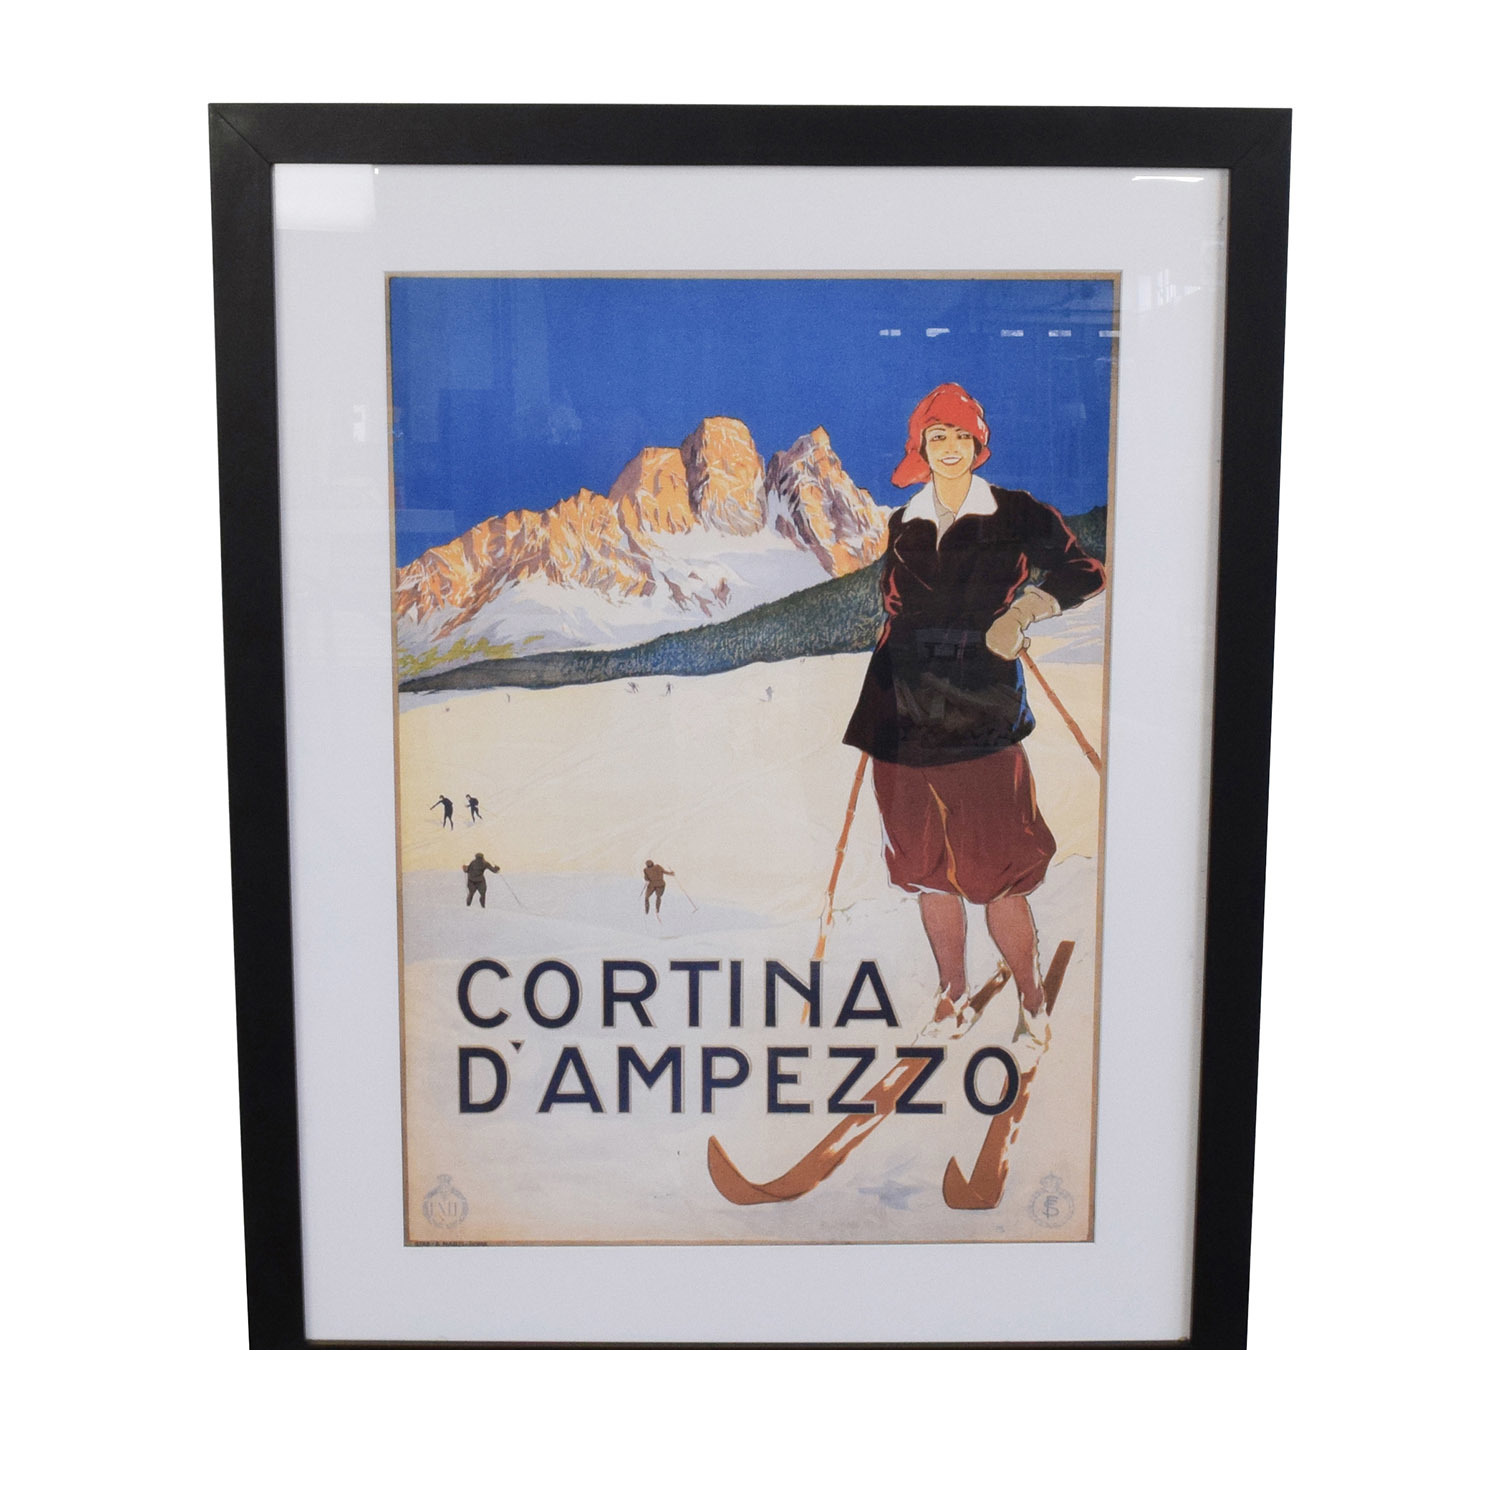 buy Cortina D'Ampezzo Framed Art Print Getty Wall Art